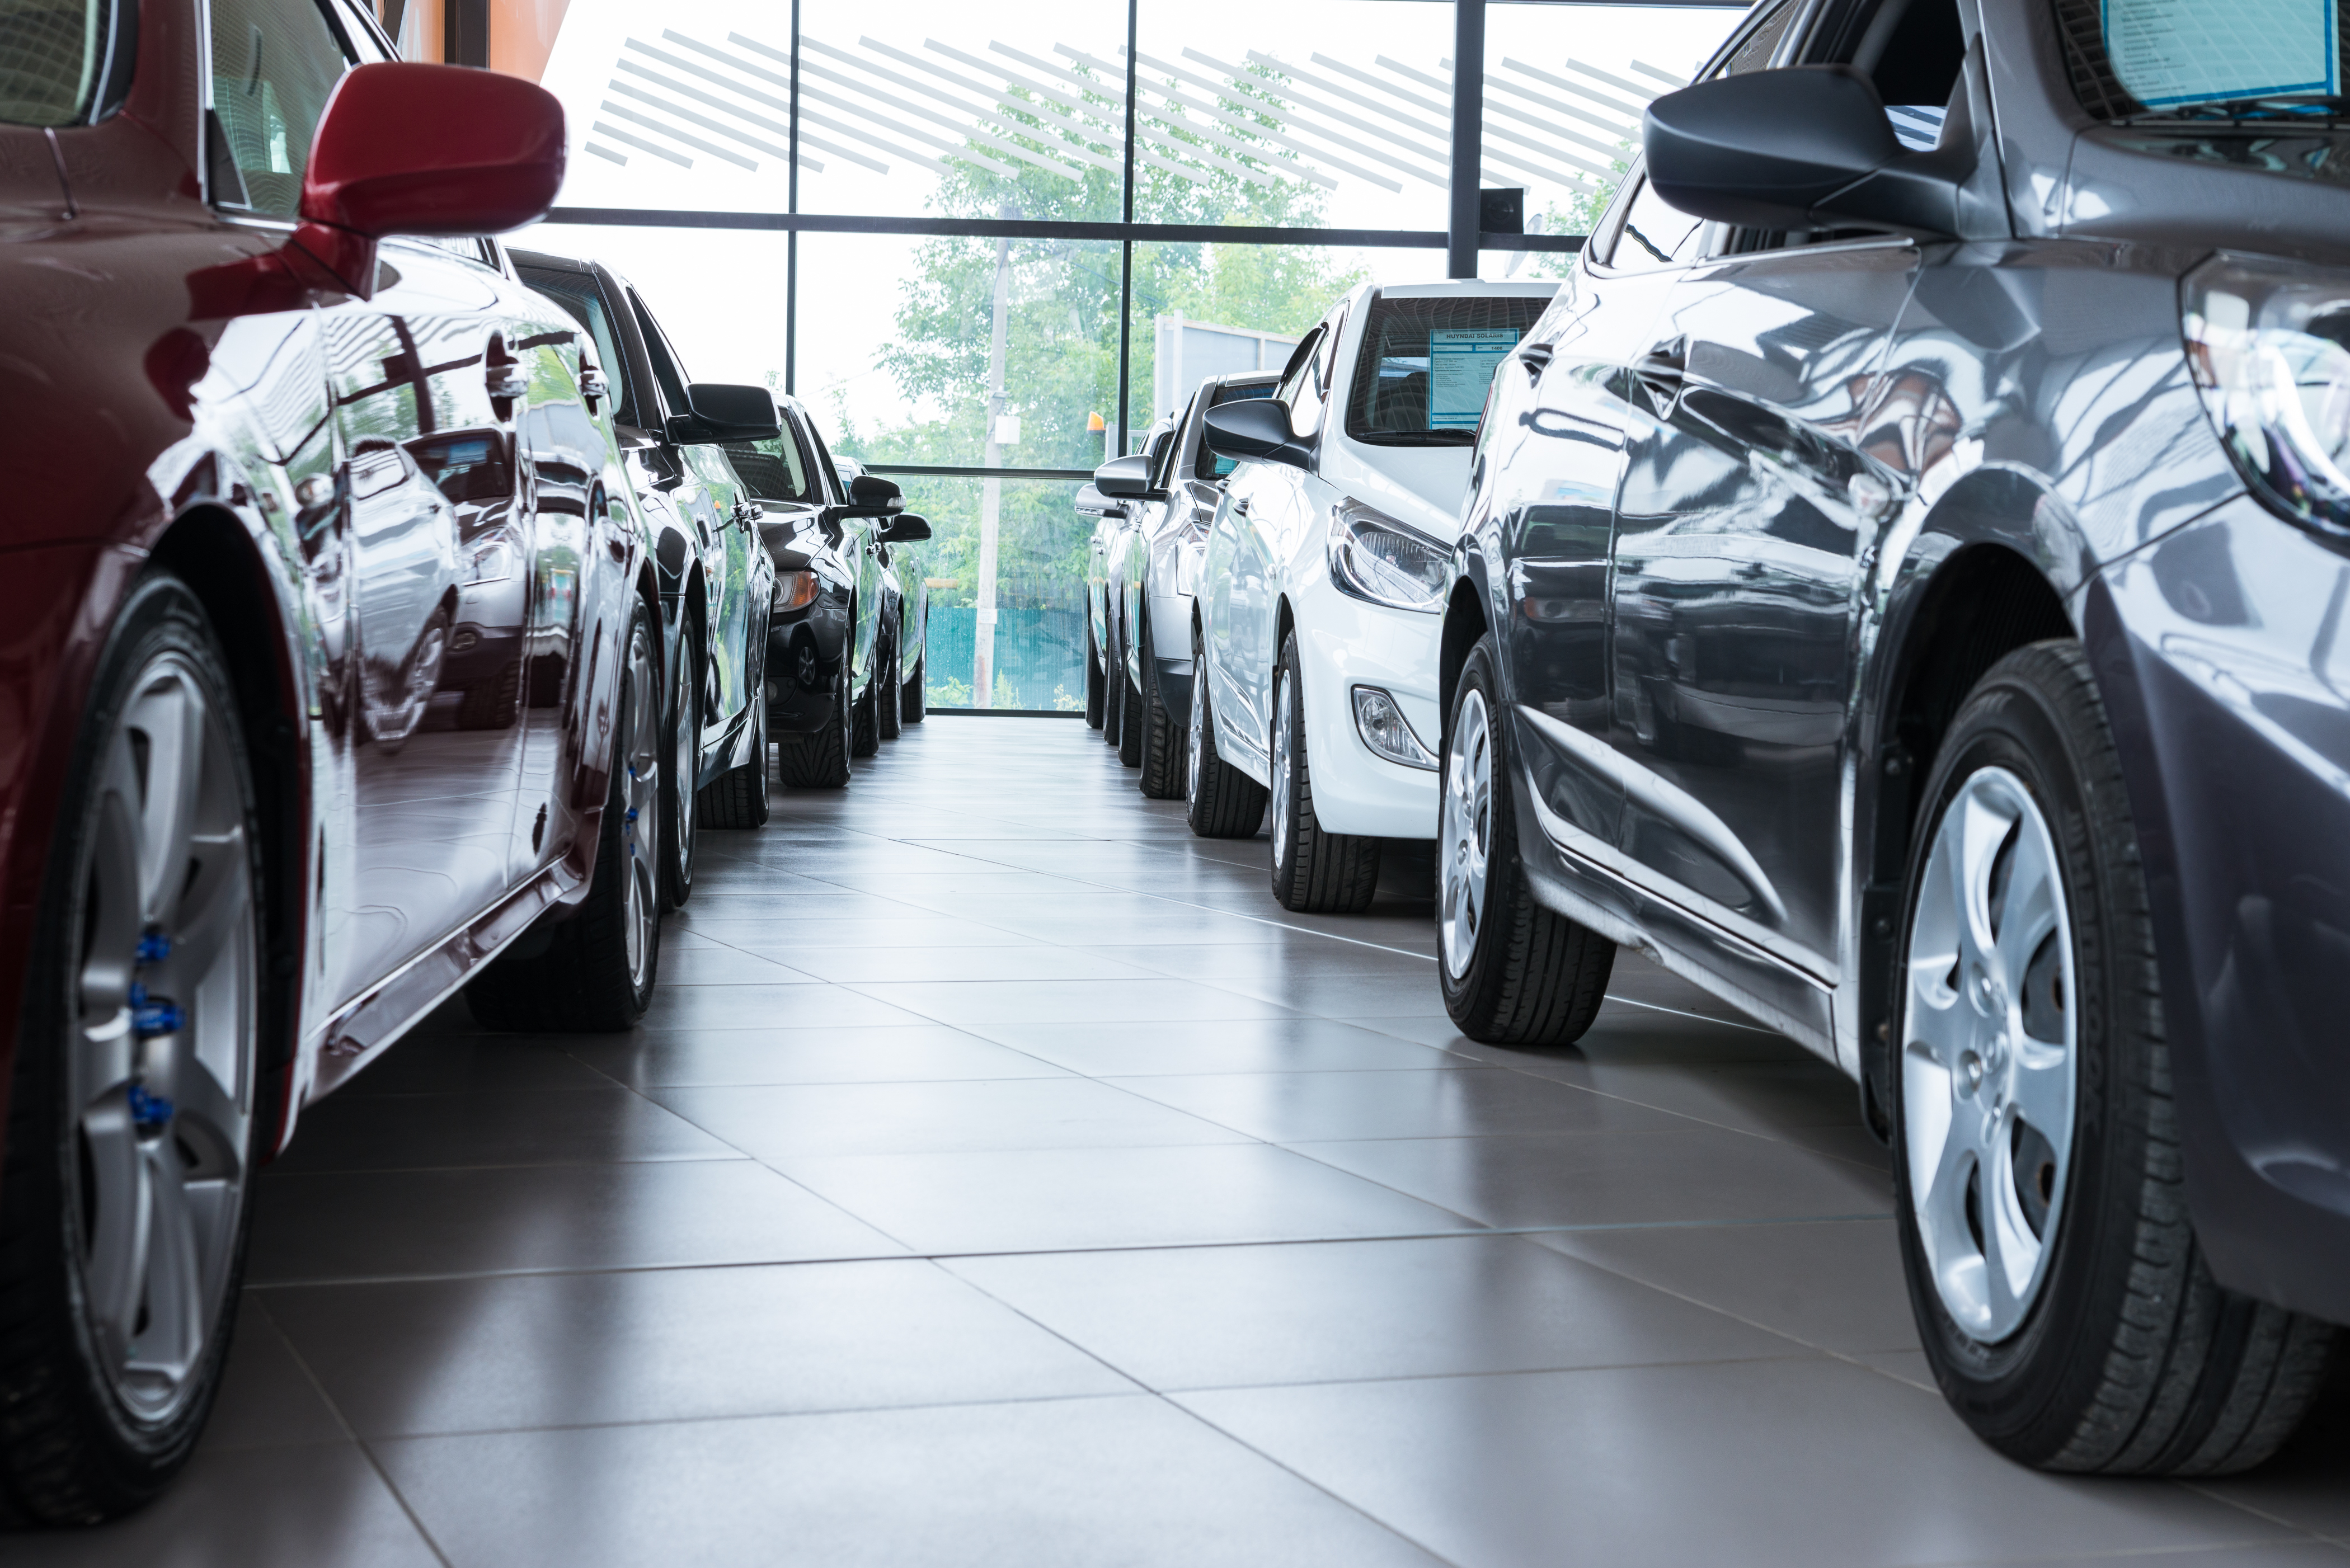 Cars lined up in a showroom